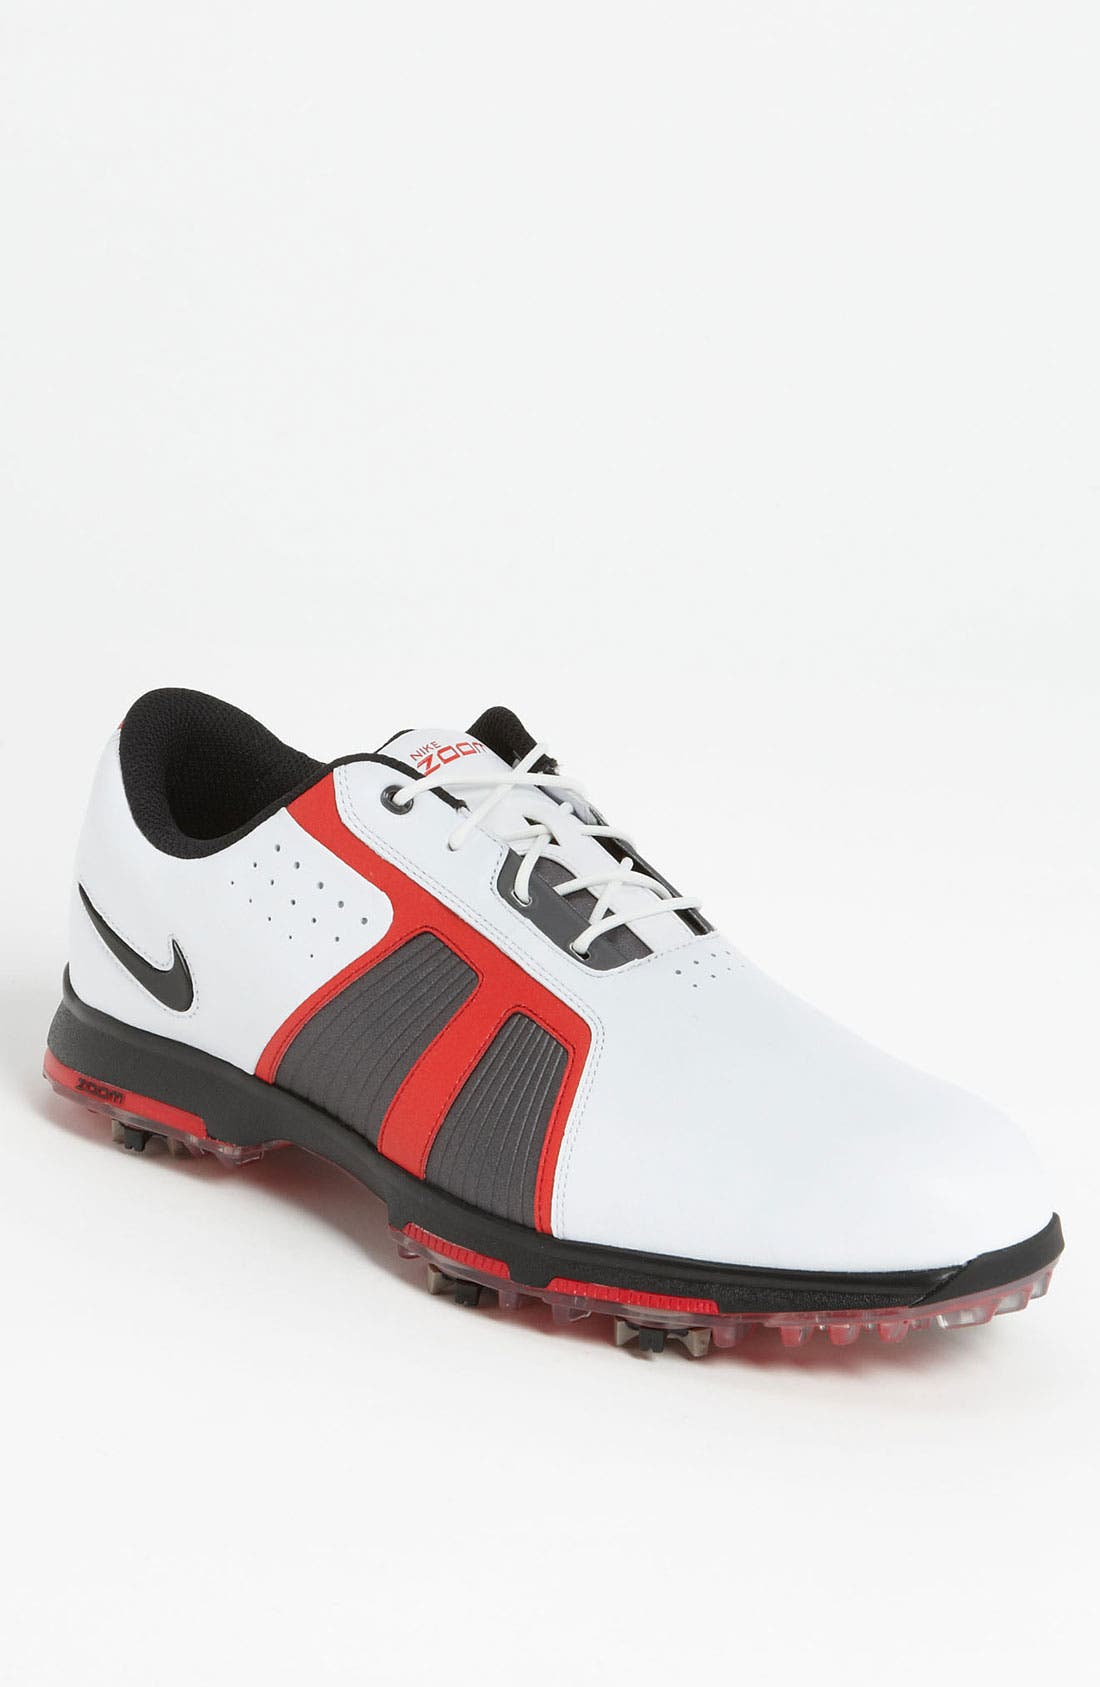 Main Image - Nike 'Zoom Trophy' Golf Shoe (Men)